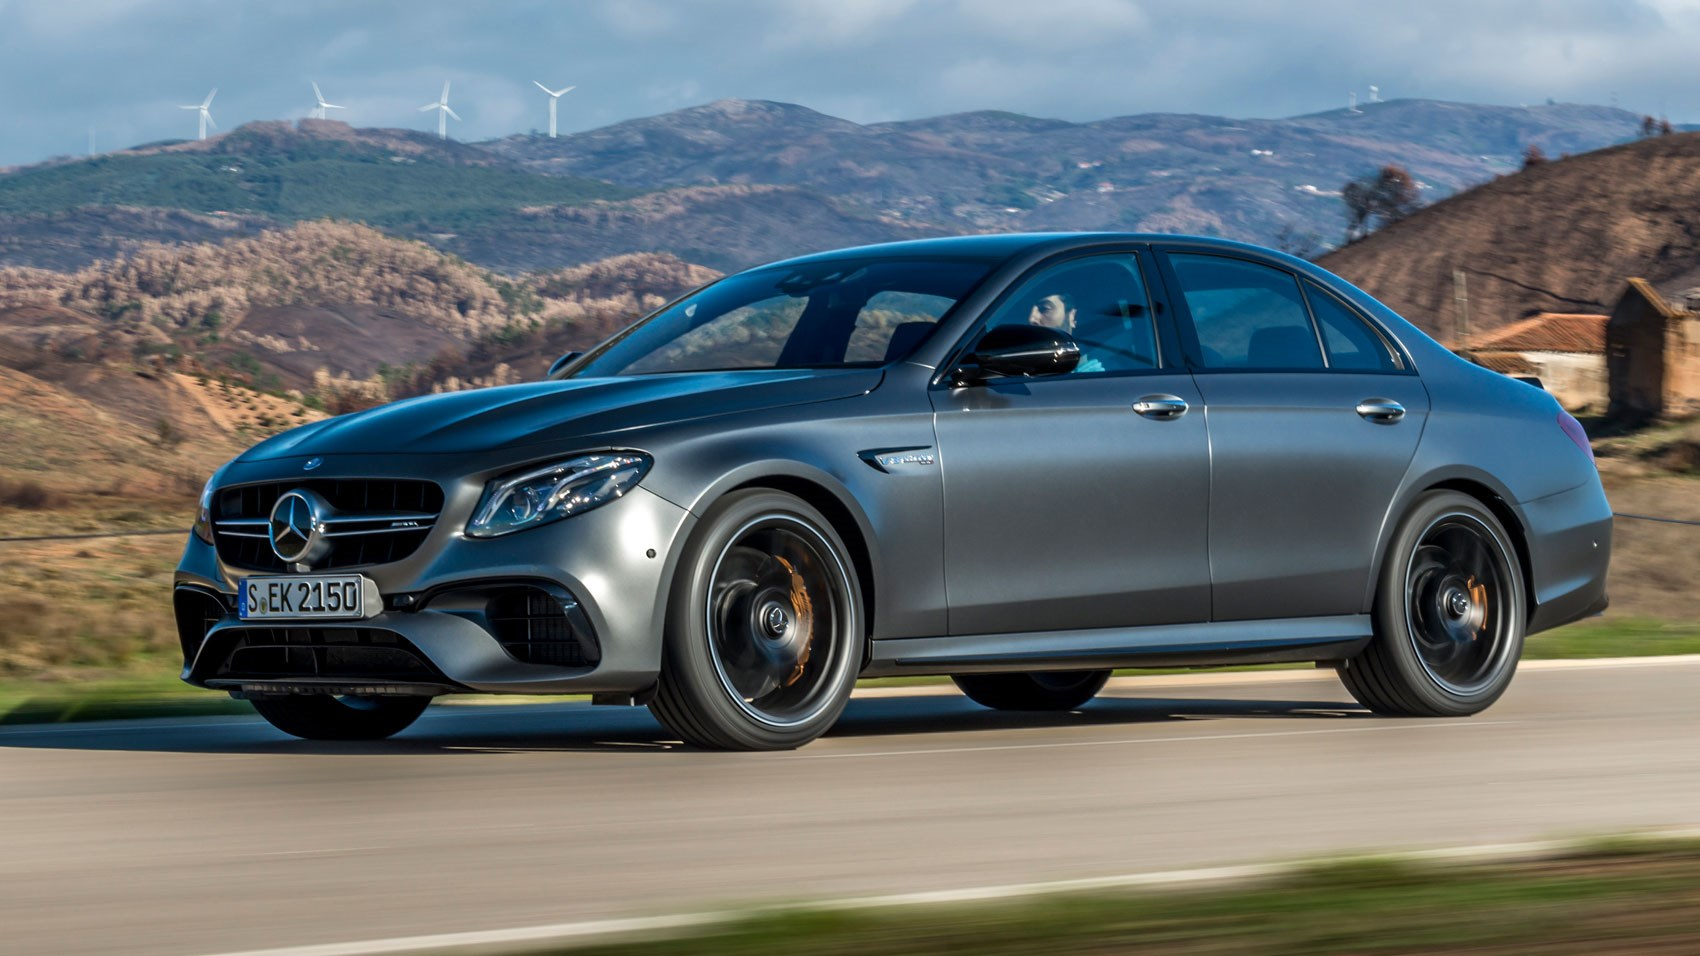 Mercedes amg e63 s 4matic 2017 review by car magazine for Mercedes benz e class e63 amg